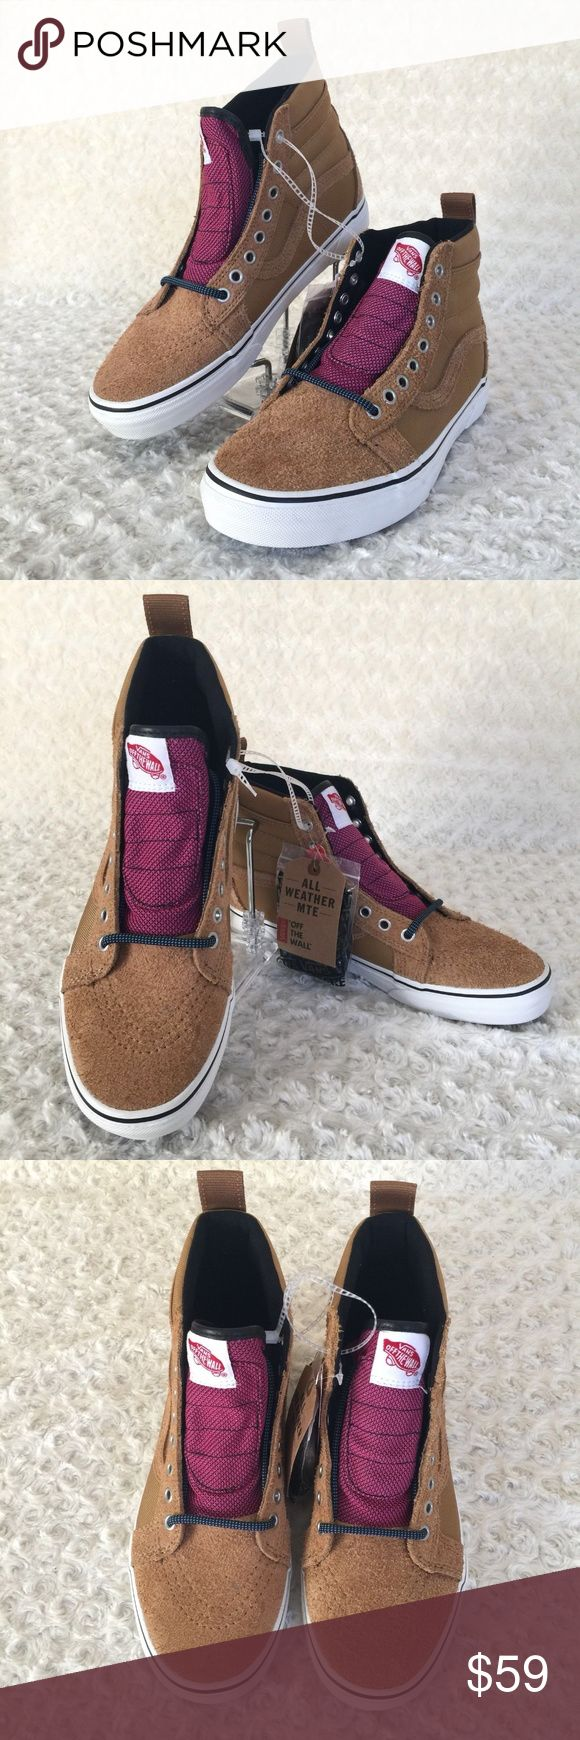 """Vans Off The Wall Ski 8 Hi Top Unisex Shoes Very rare and hard to find color in Golden Brown and pink colorway combination Vans Off The Wall Ski 8 Hi Tops Unisex Shoes in Suede Leather Upper, canvass.  Men Size 7.5 / Women 9 US   Style: 721356  MSRP: $74.95  The Sk8-Hi is Vans original out-of-the-box skate performance shoe. These """"Off the Wall"""" kicks have dressed the feet of pro and amateur skaters since 1966 and today's model is just as authentic as the originals. You'll enjoy the perfect…"""